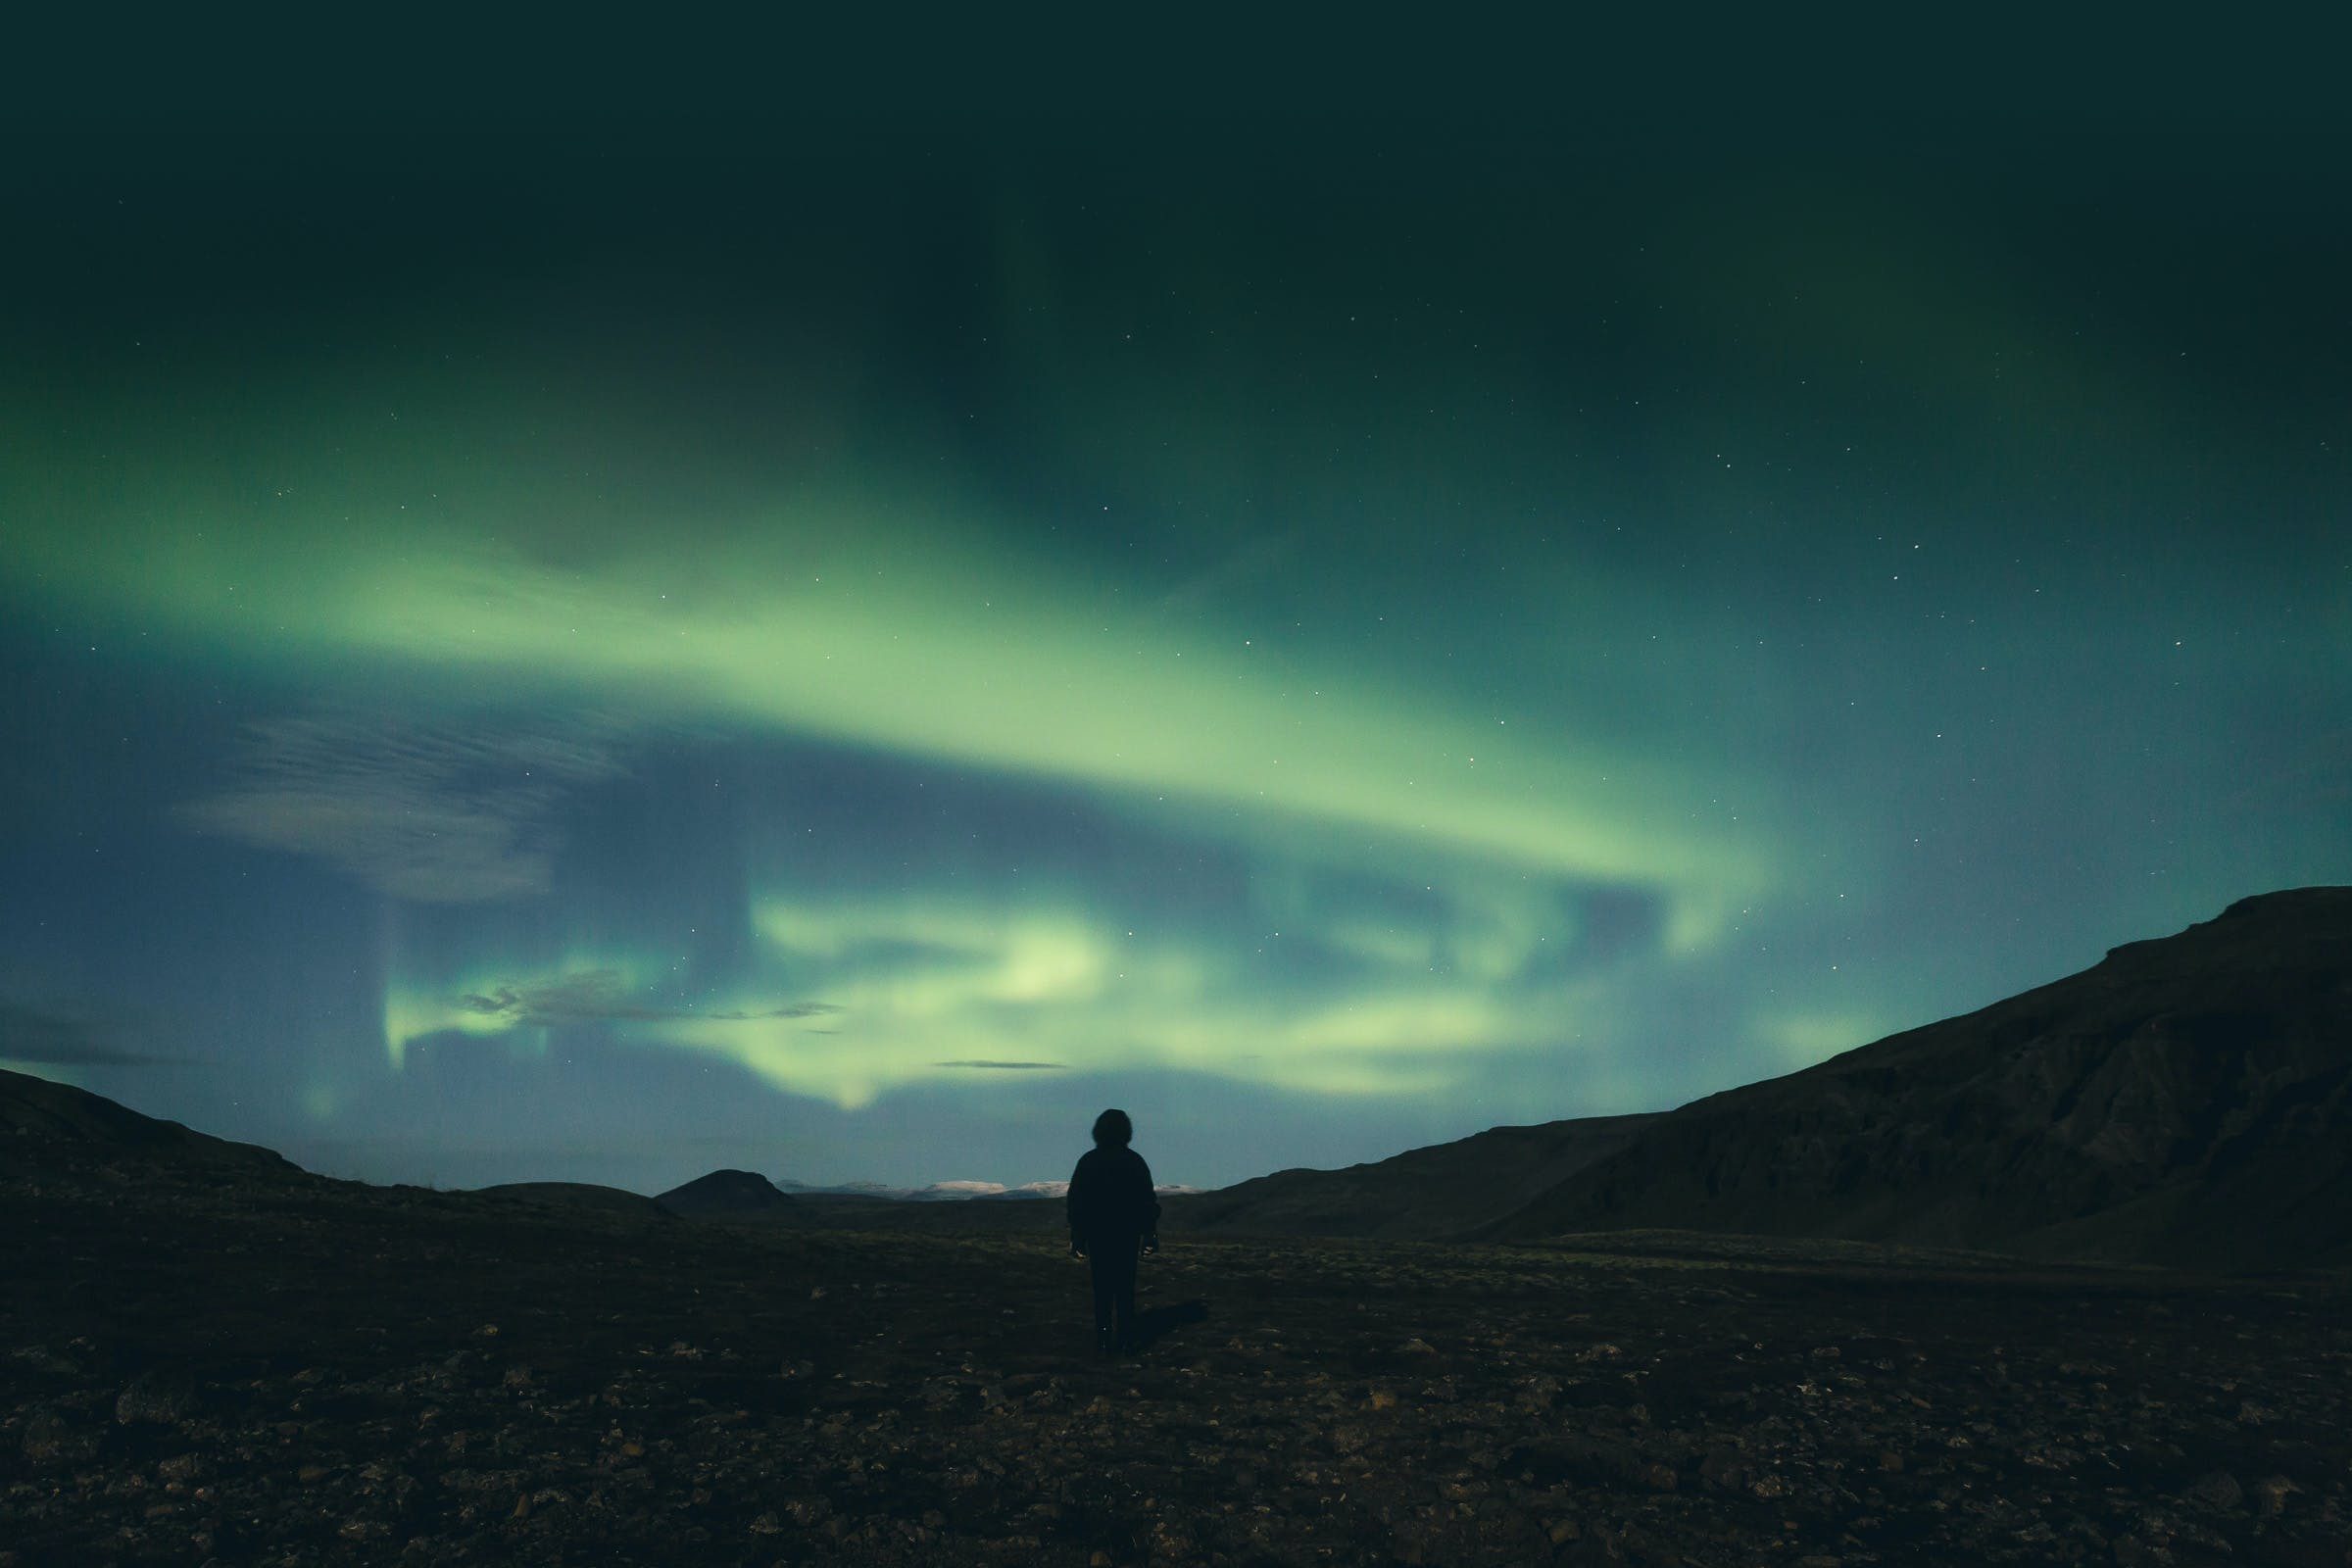 A person watching the Northern Lights over a mountain